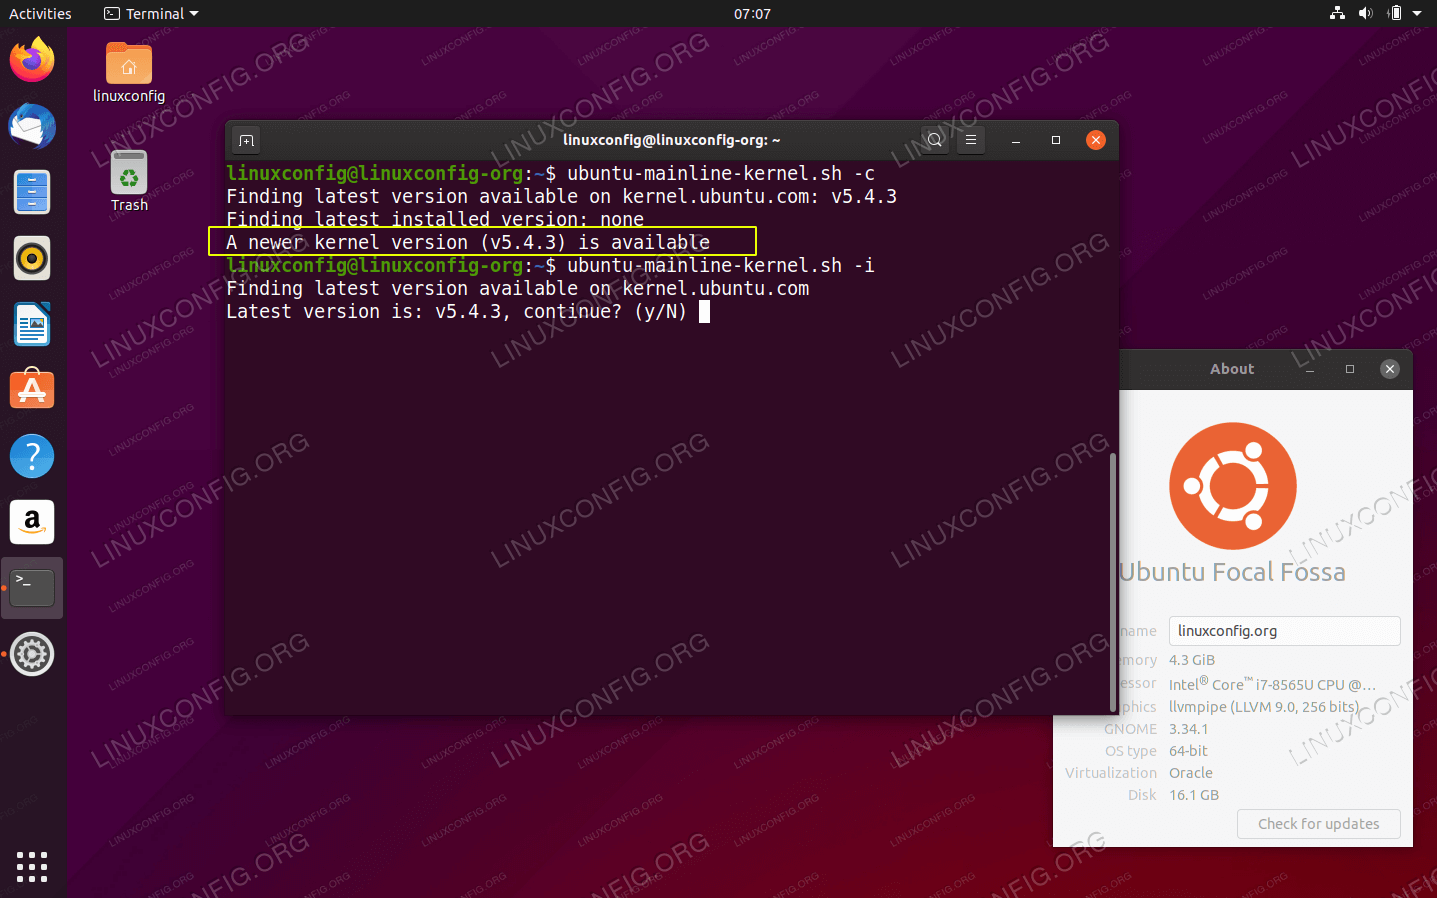 Upgrade kernel to latest version on Ubuntu 20.04 Focal Fossa Linux